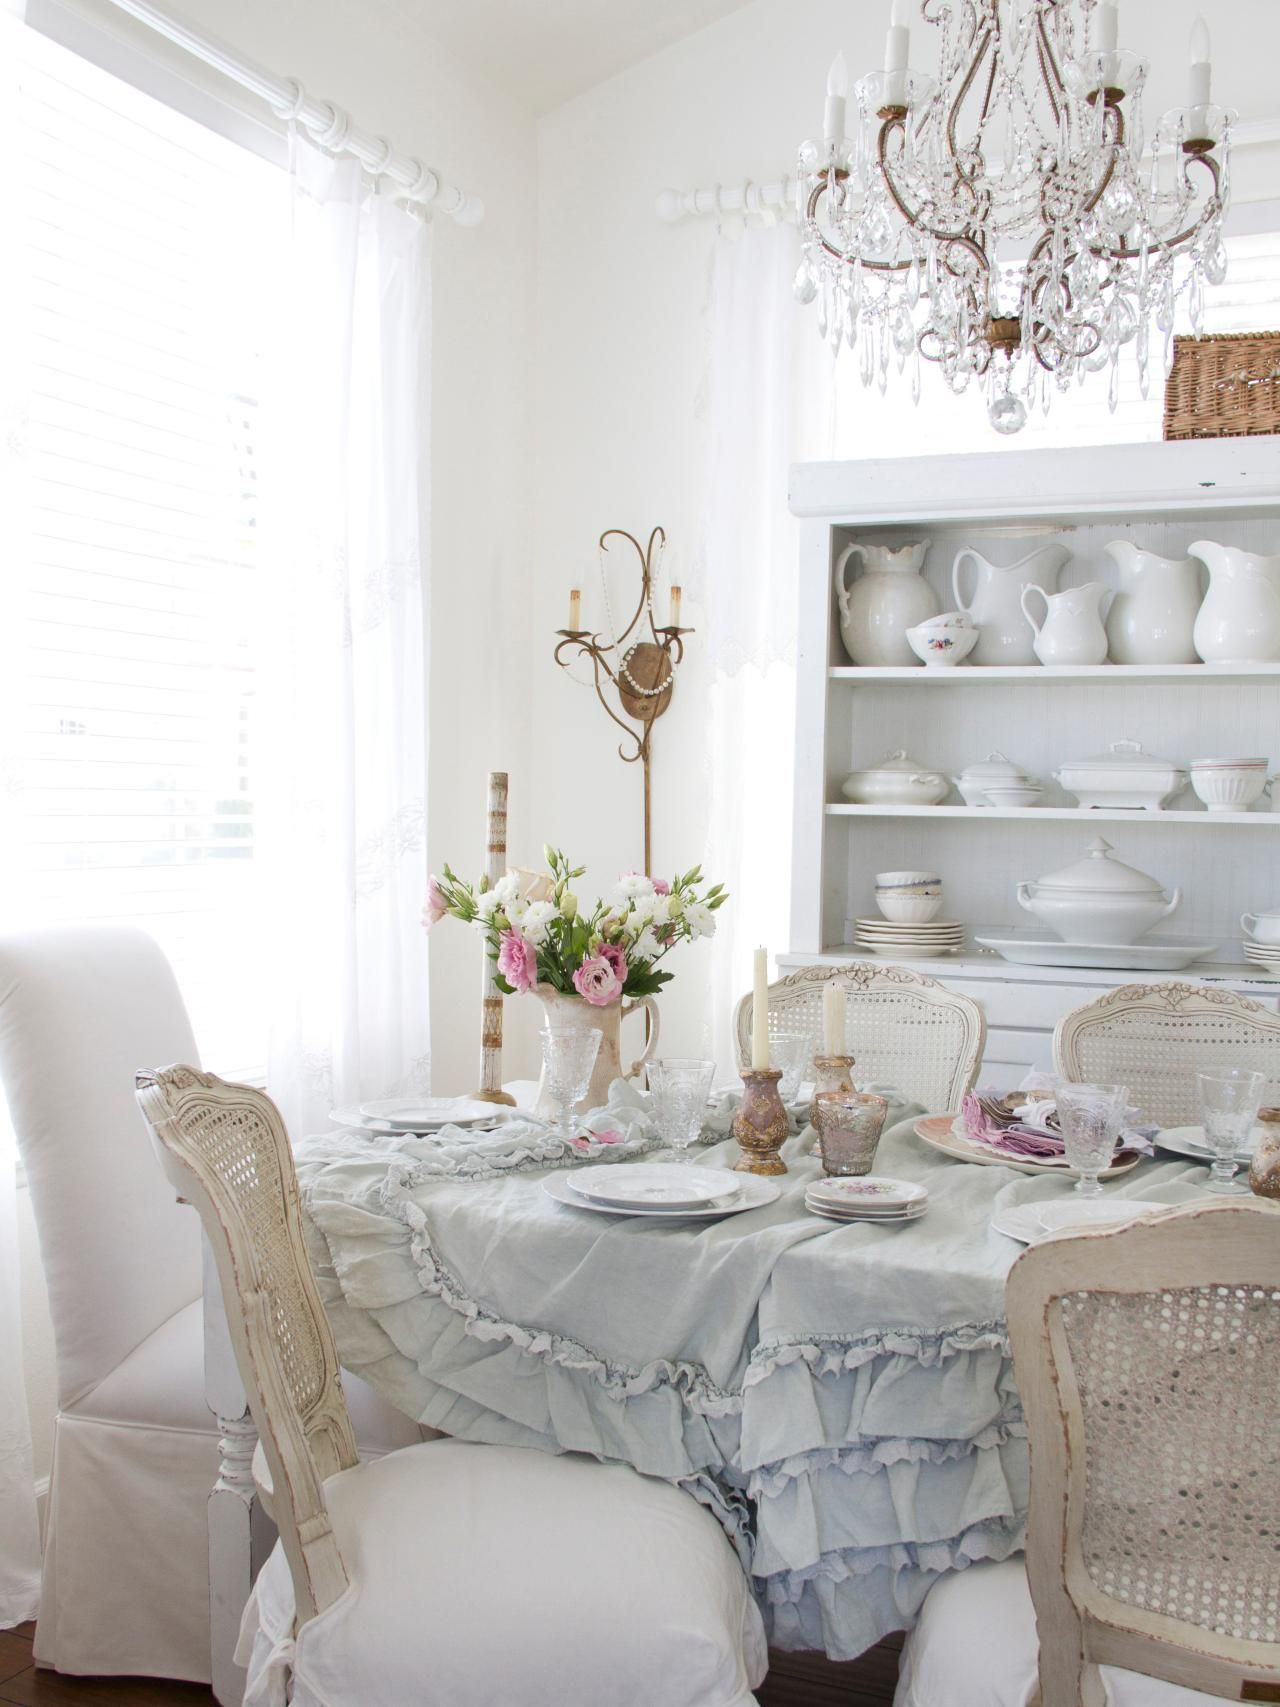 Charming 25 Shabby Chic Interior Design Ideas